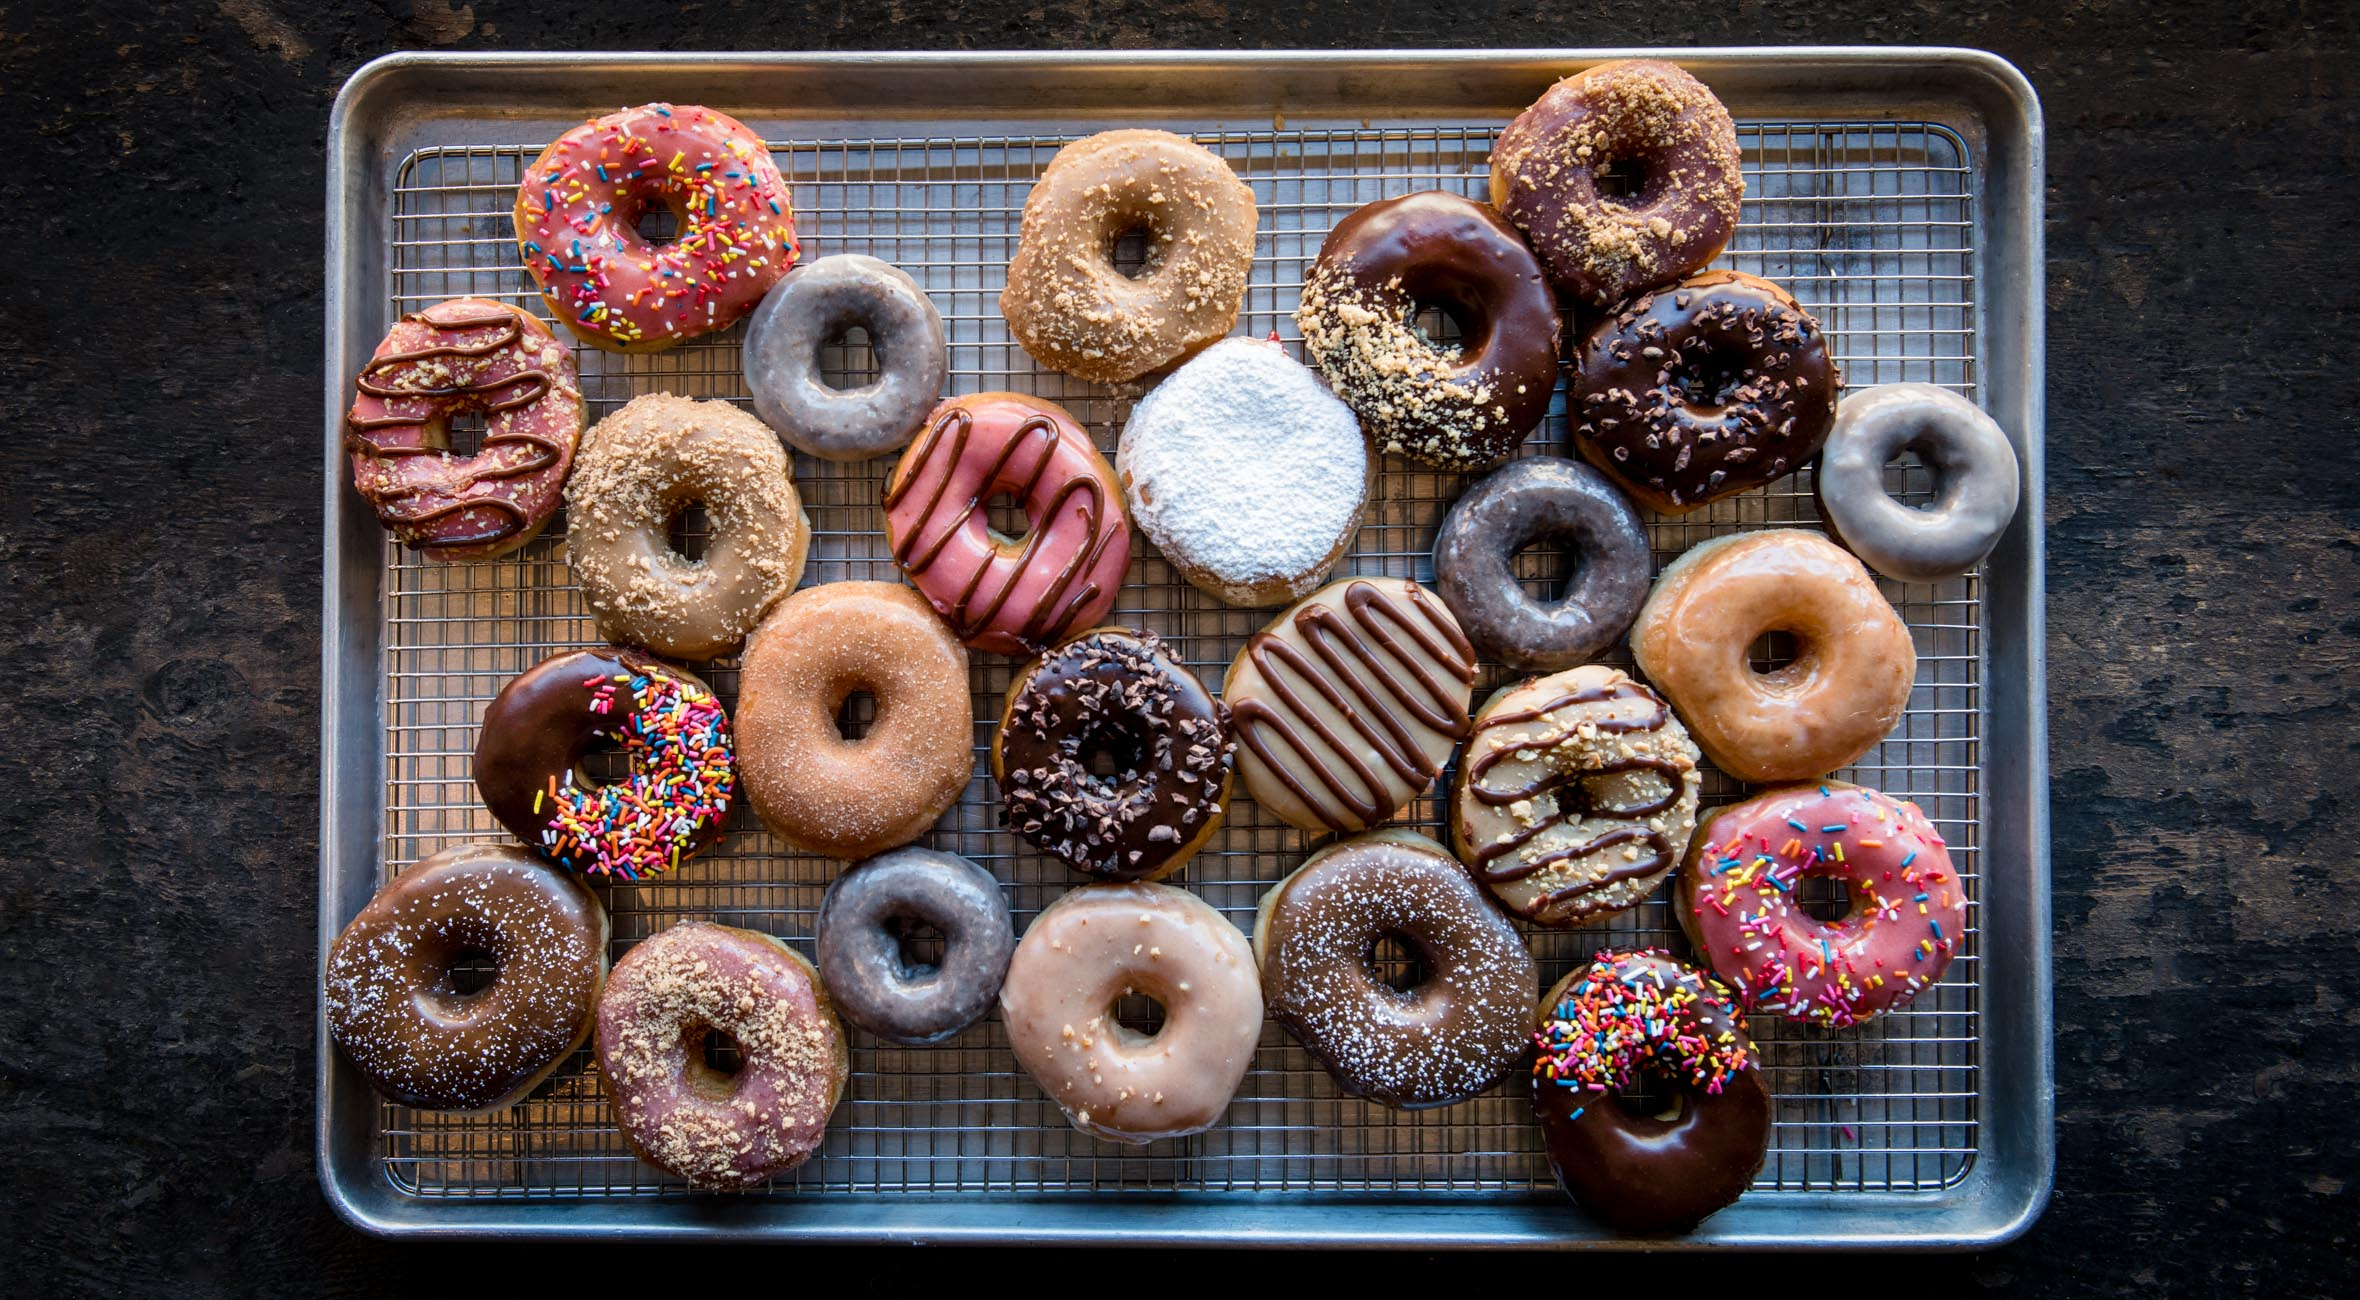 ½ Dozen Doughnuts at Dun-Well Doughnuts – Voted Best Doughnuts in NYC